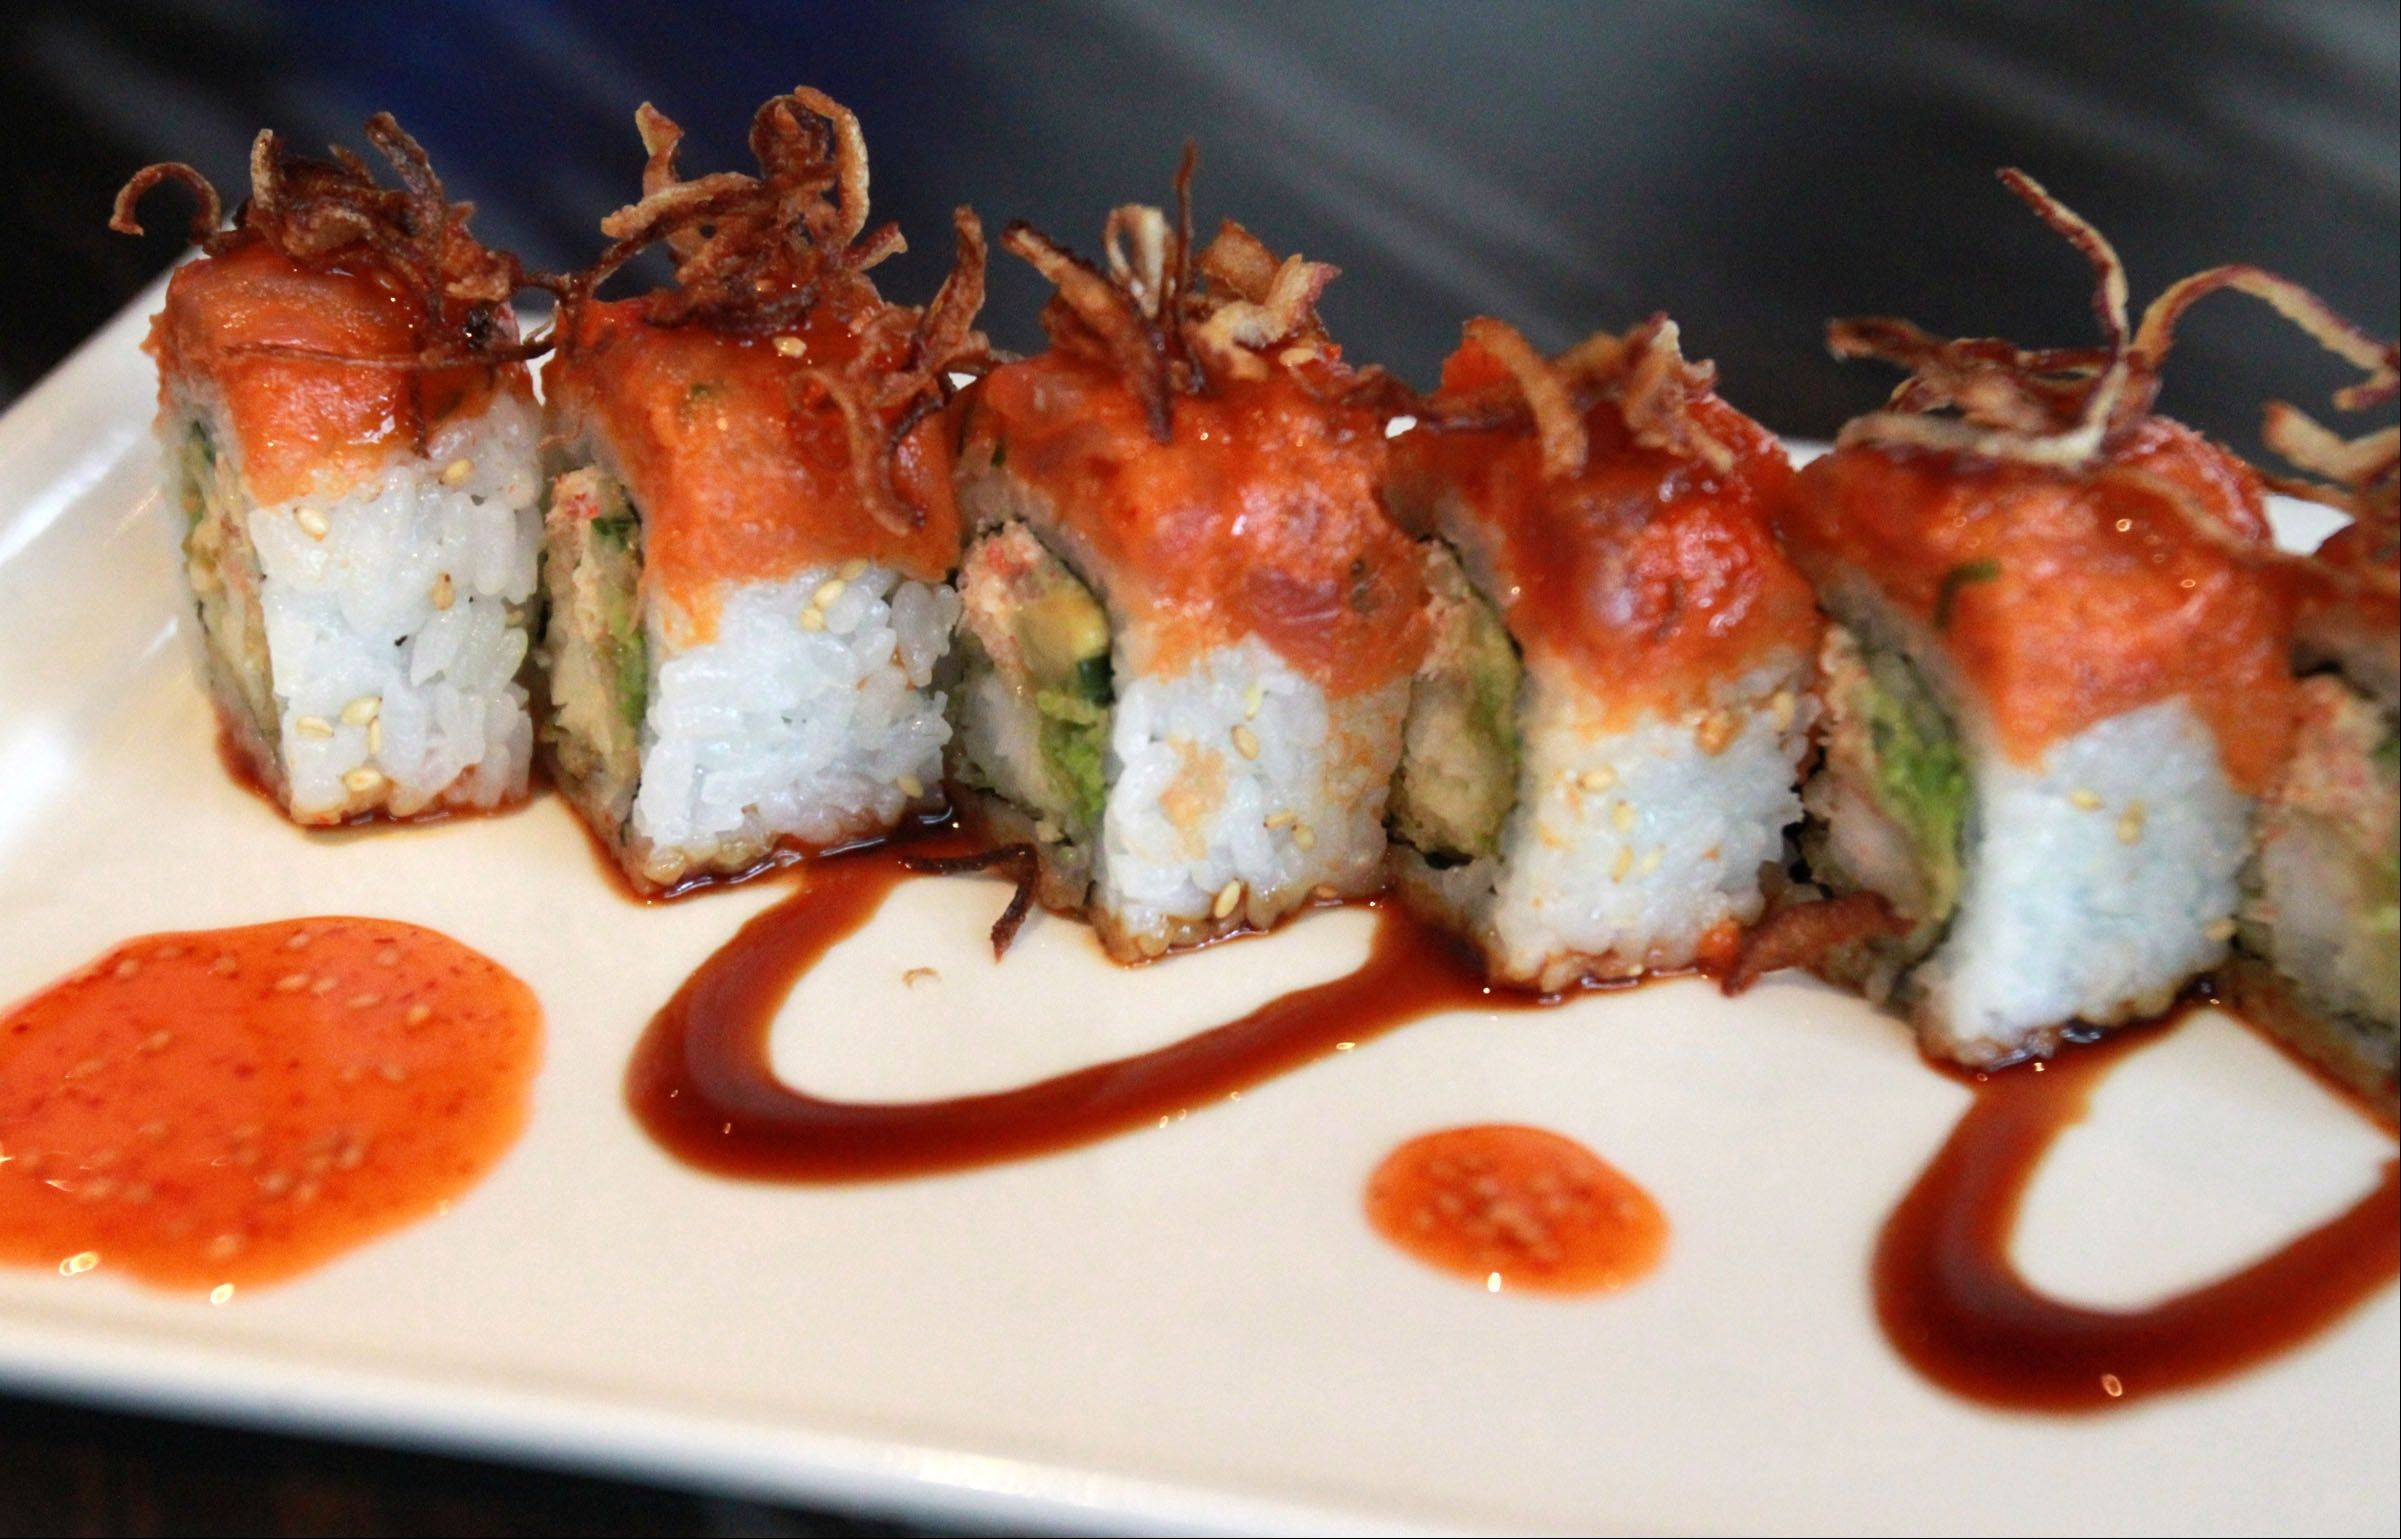 Tuna sushi is among the varied options at e+o Food and Drink at Randhurst Village in Mount Prospect.